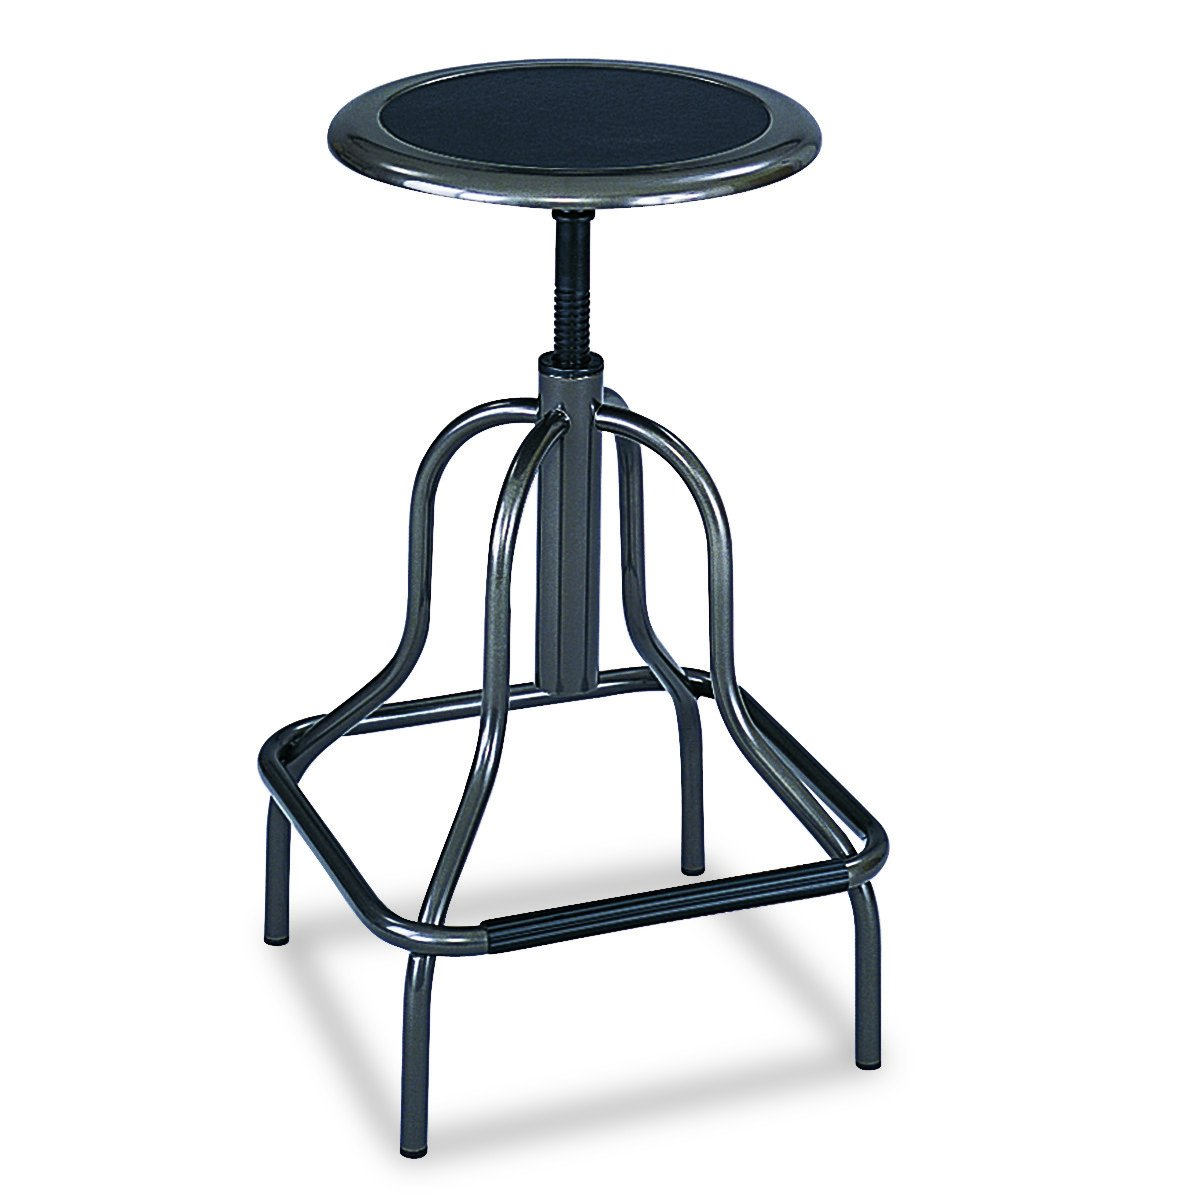 Safco Products Diesel Extended-Height Stool , Industrial Style, Steel Frame, Padded Seat, Height-Adjustable